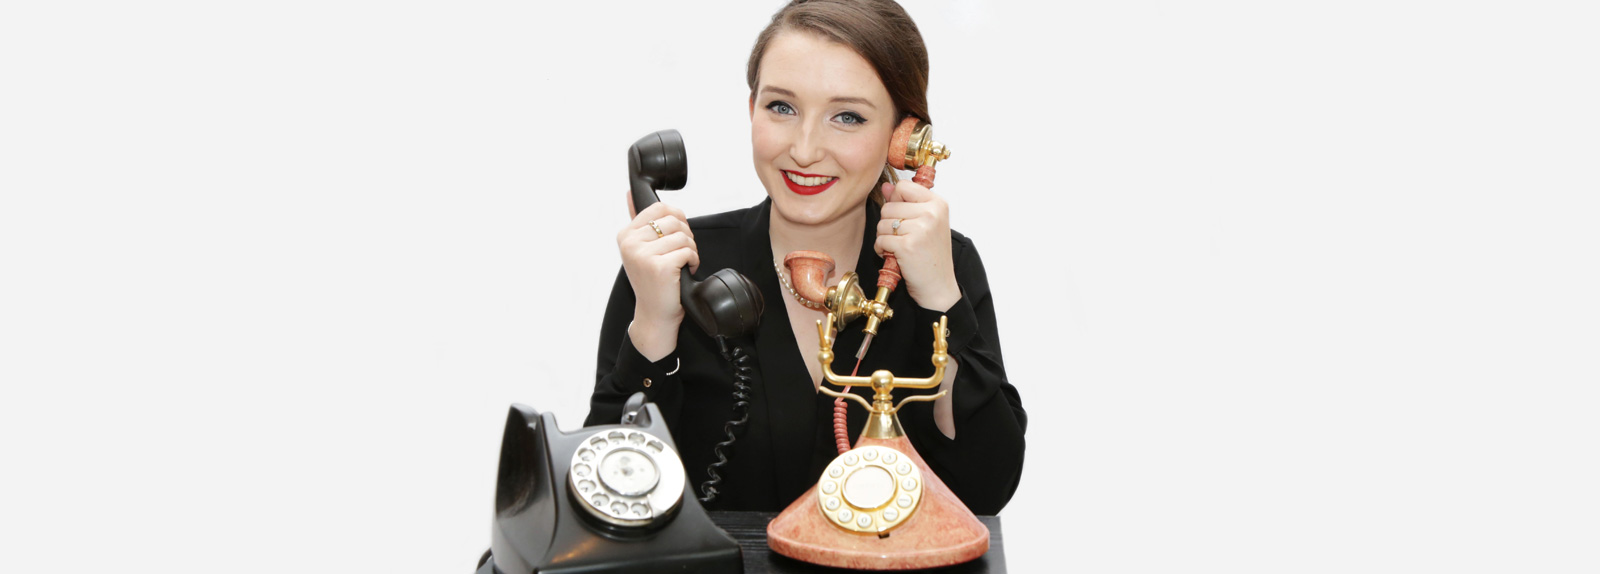 Smiling, smart young woman answering traditional telephone sets